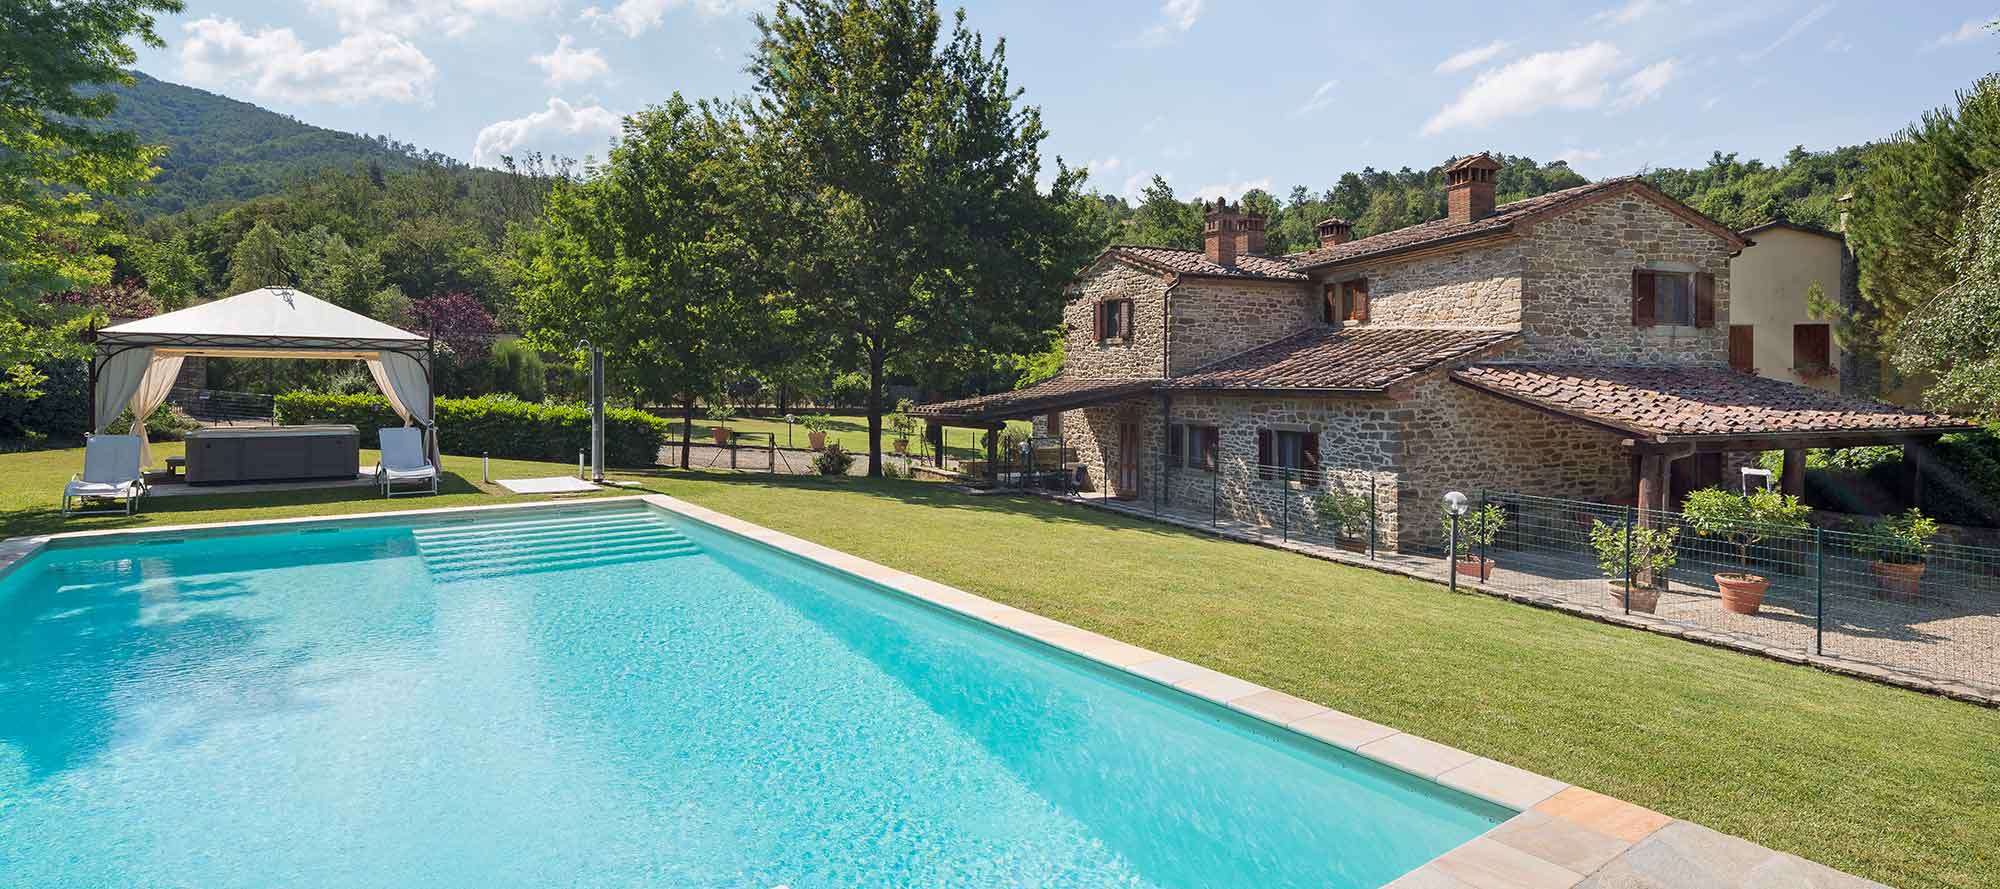 Cosy Tuscan farmhouse with private swimming pool